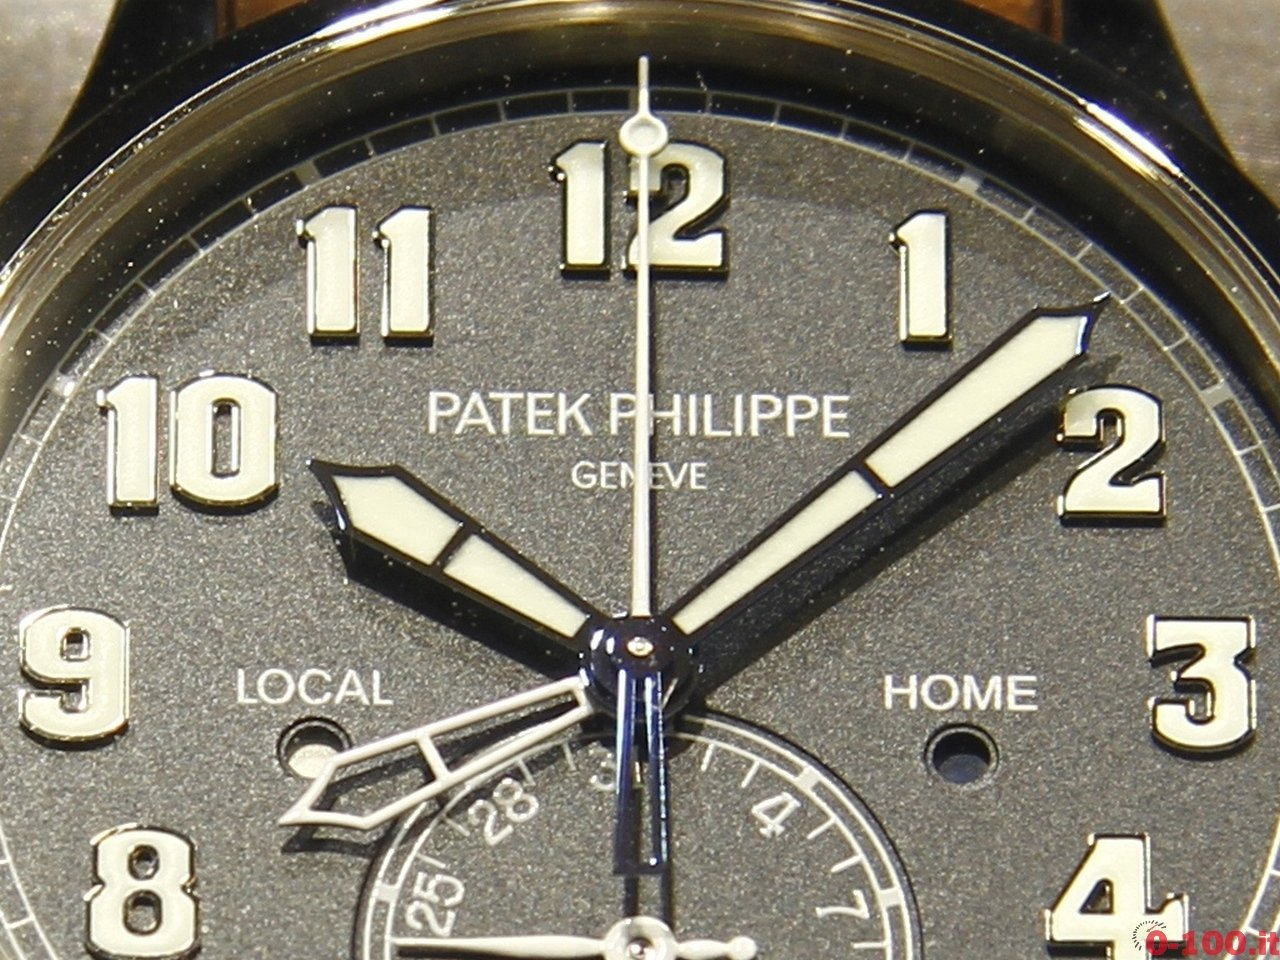 baselworld-2015-patek-philippe-calatrava-pilot-travel-time-0-100_5